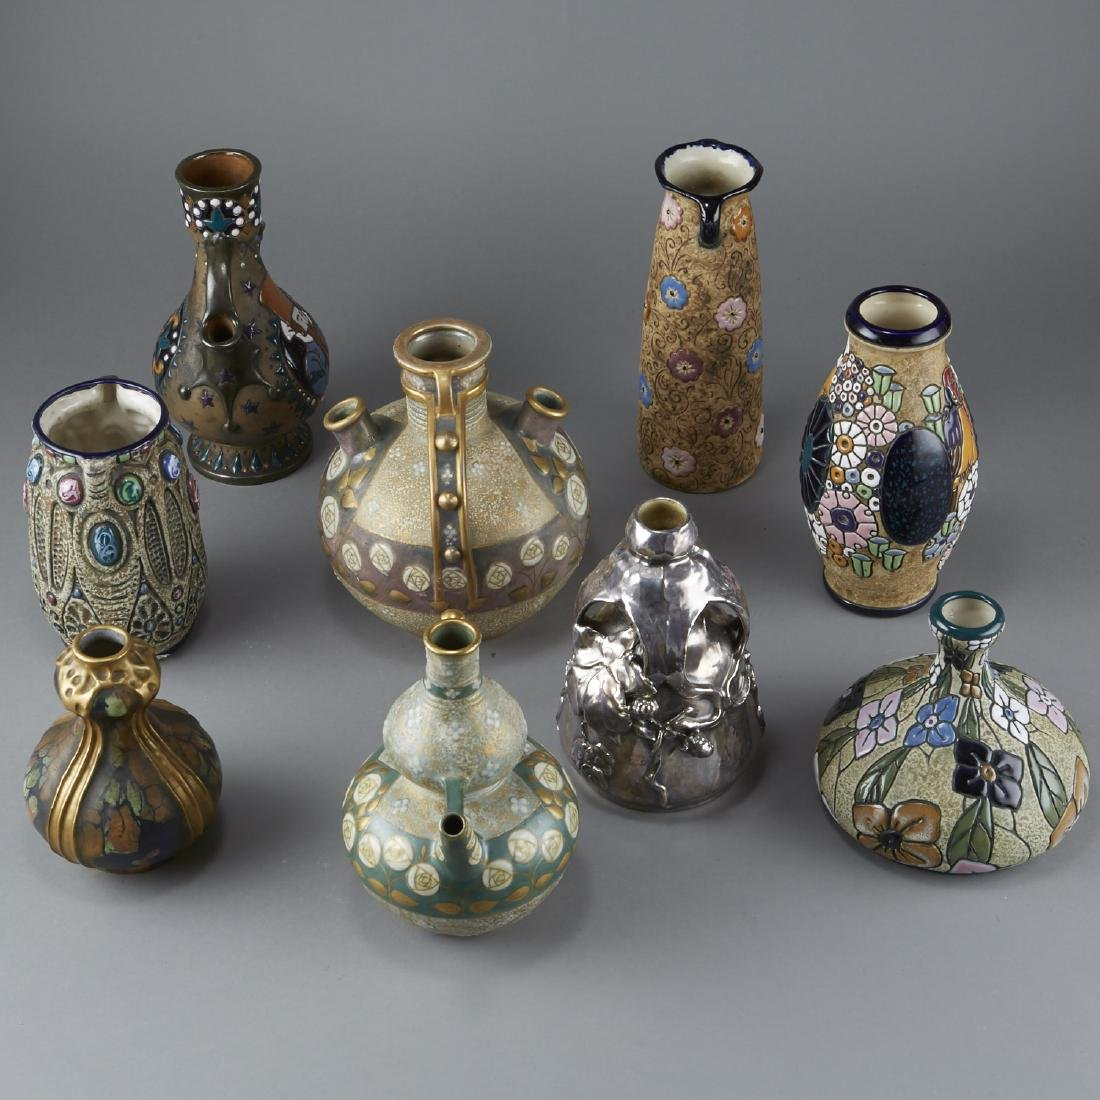 Group of 9 Amphora Pottery - 4